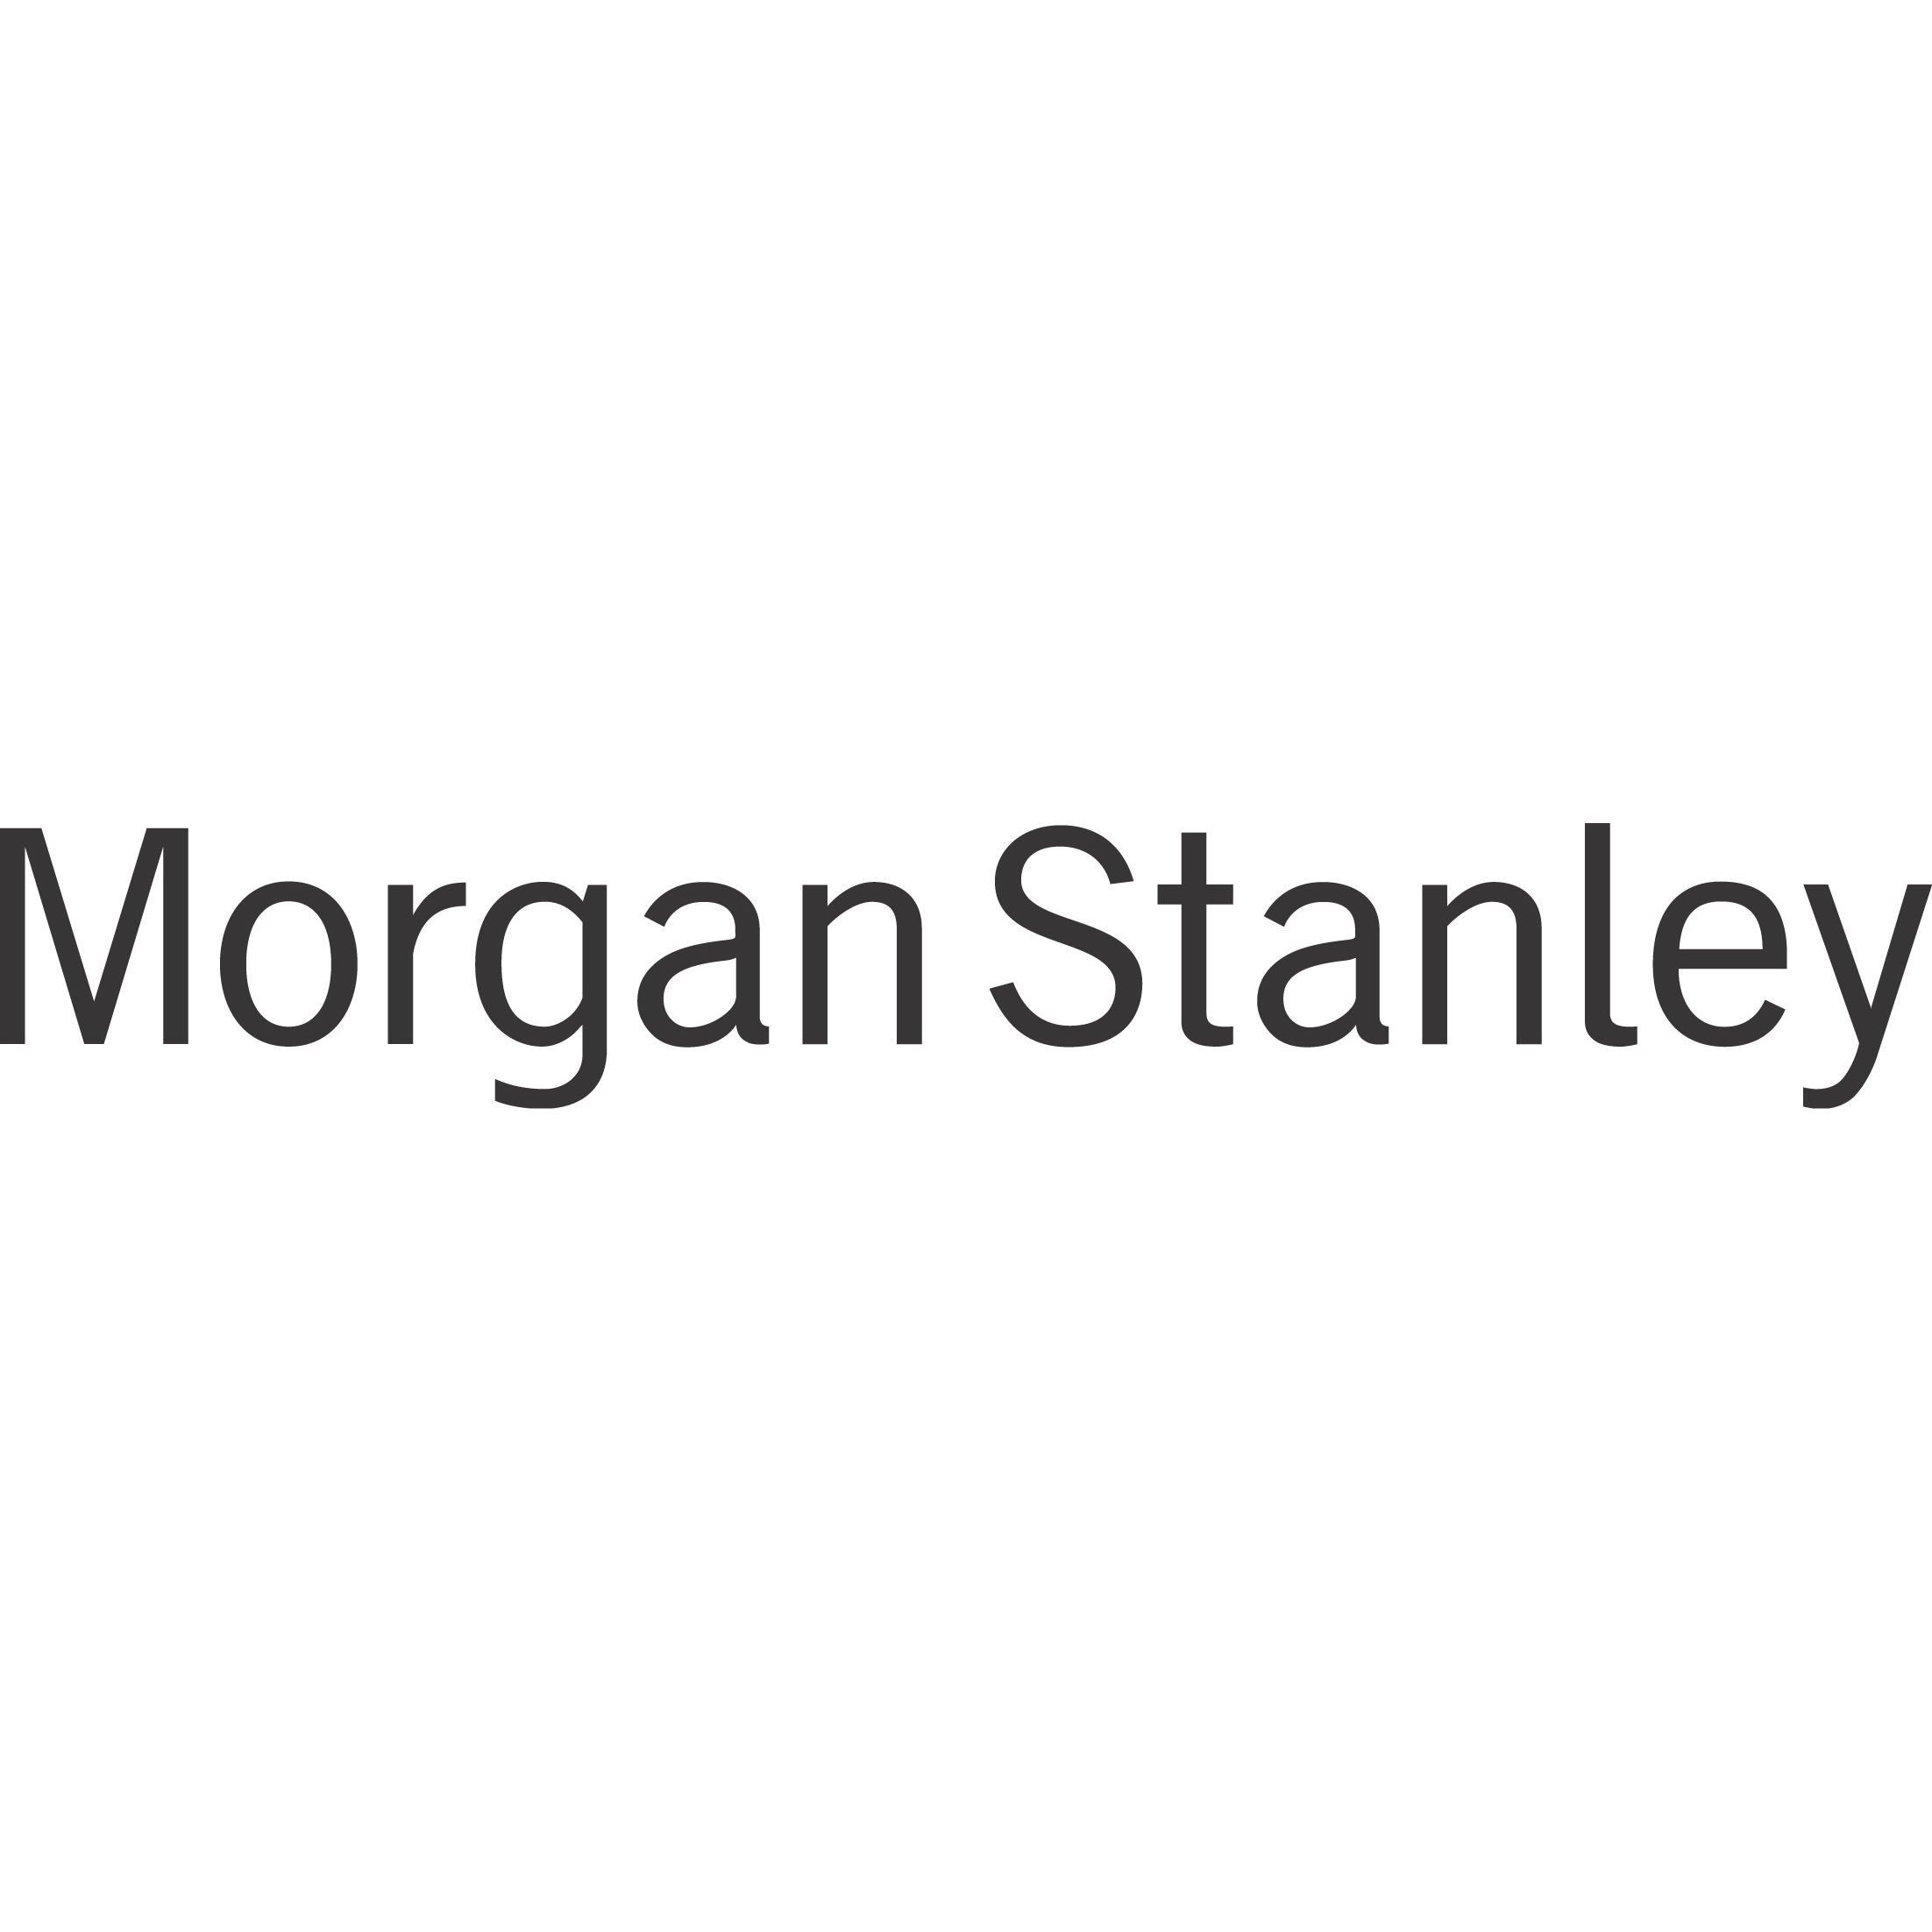 L. Michael Roether - Morgan Stanley